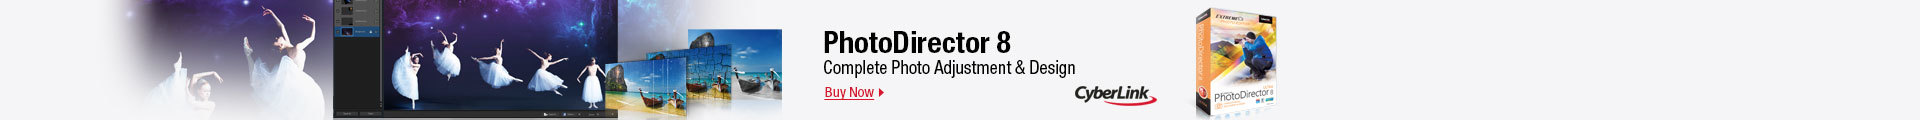 PhotoDirector 8: complete photo adjustment & design